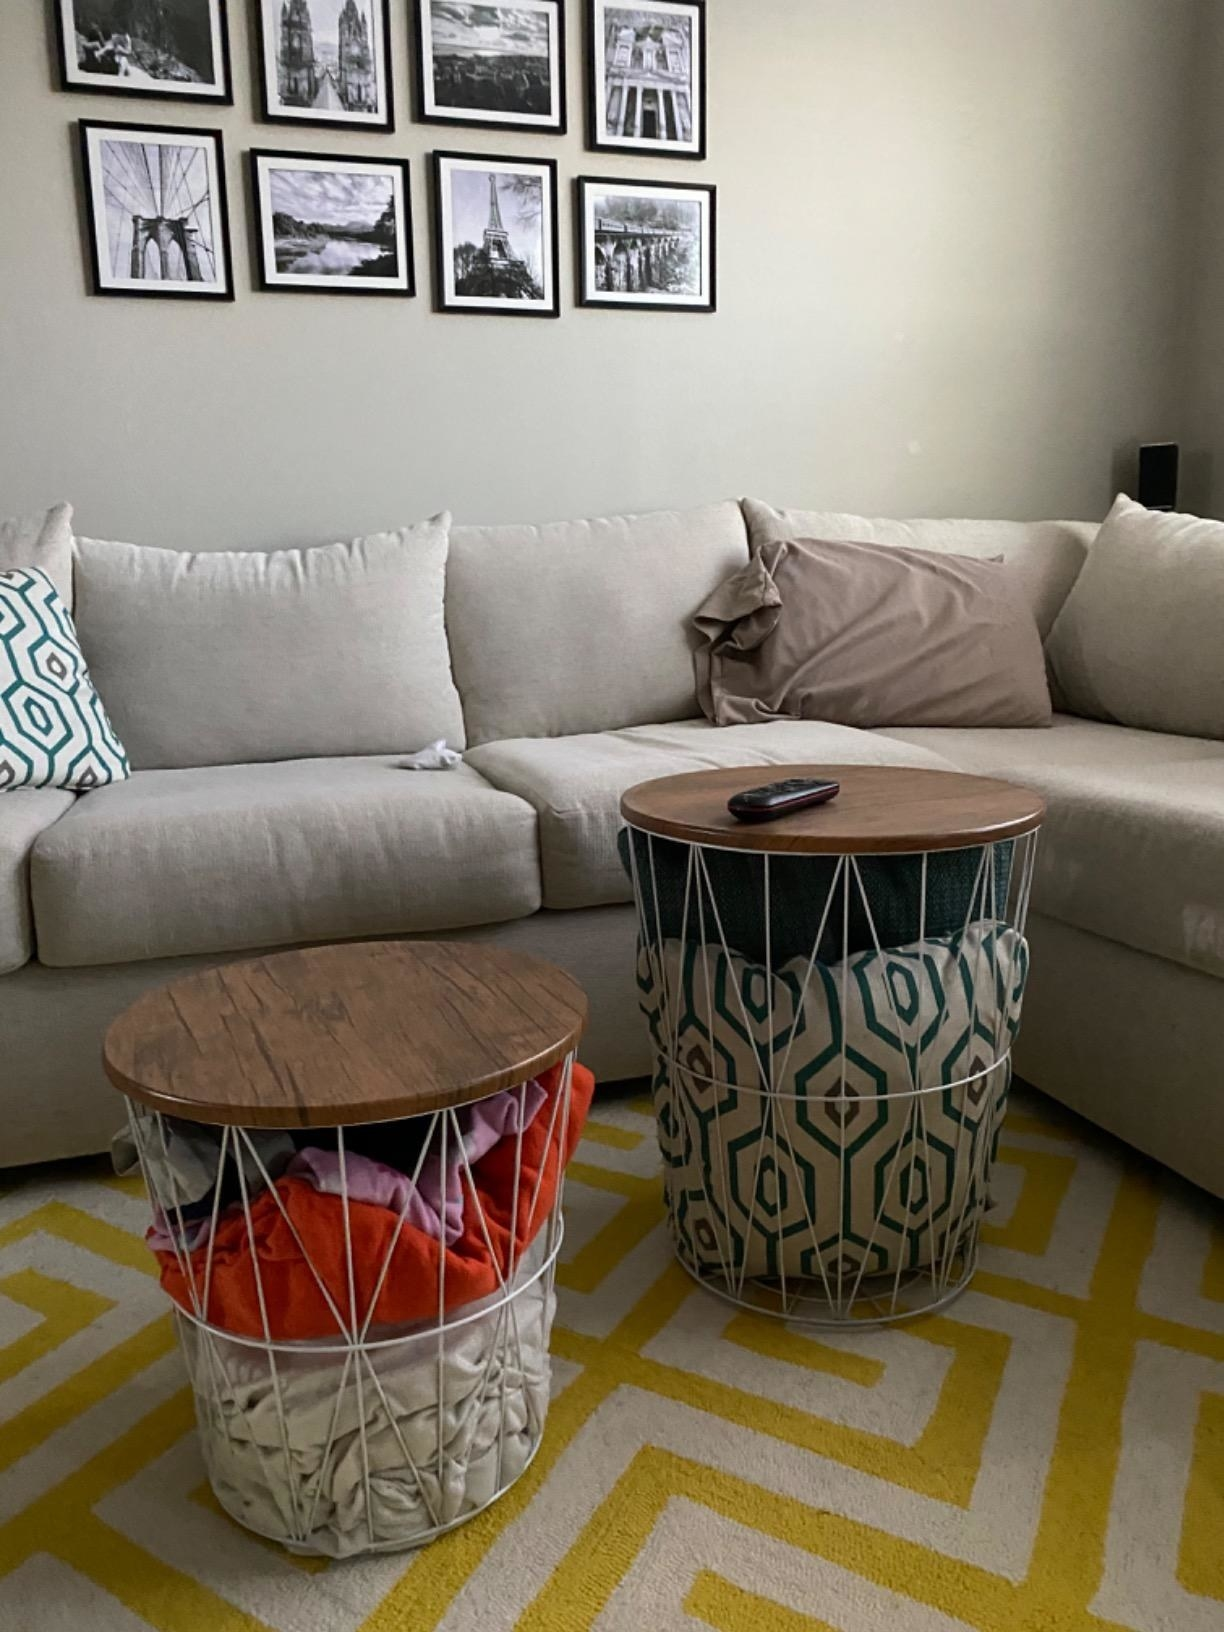 reviewer image of two Lavish Home Nesting End Tables with Storage in a customer's living room being used to store blankets and pillows